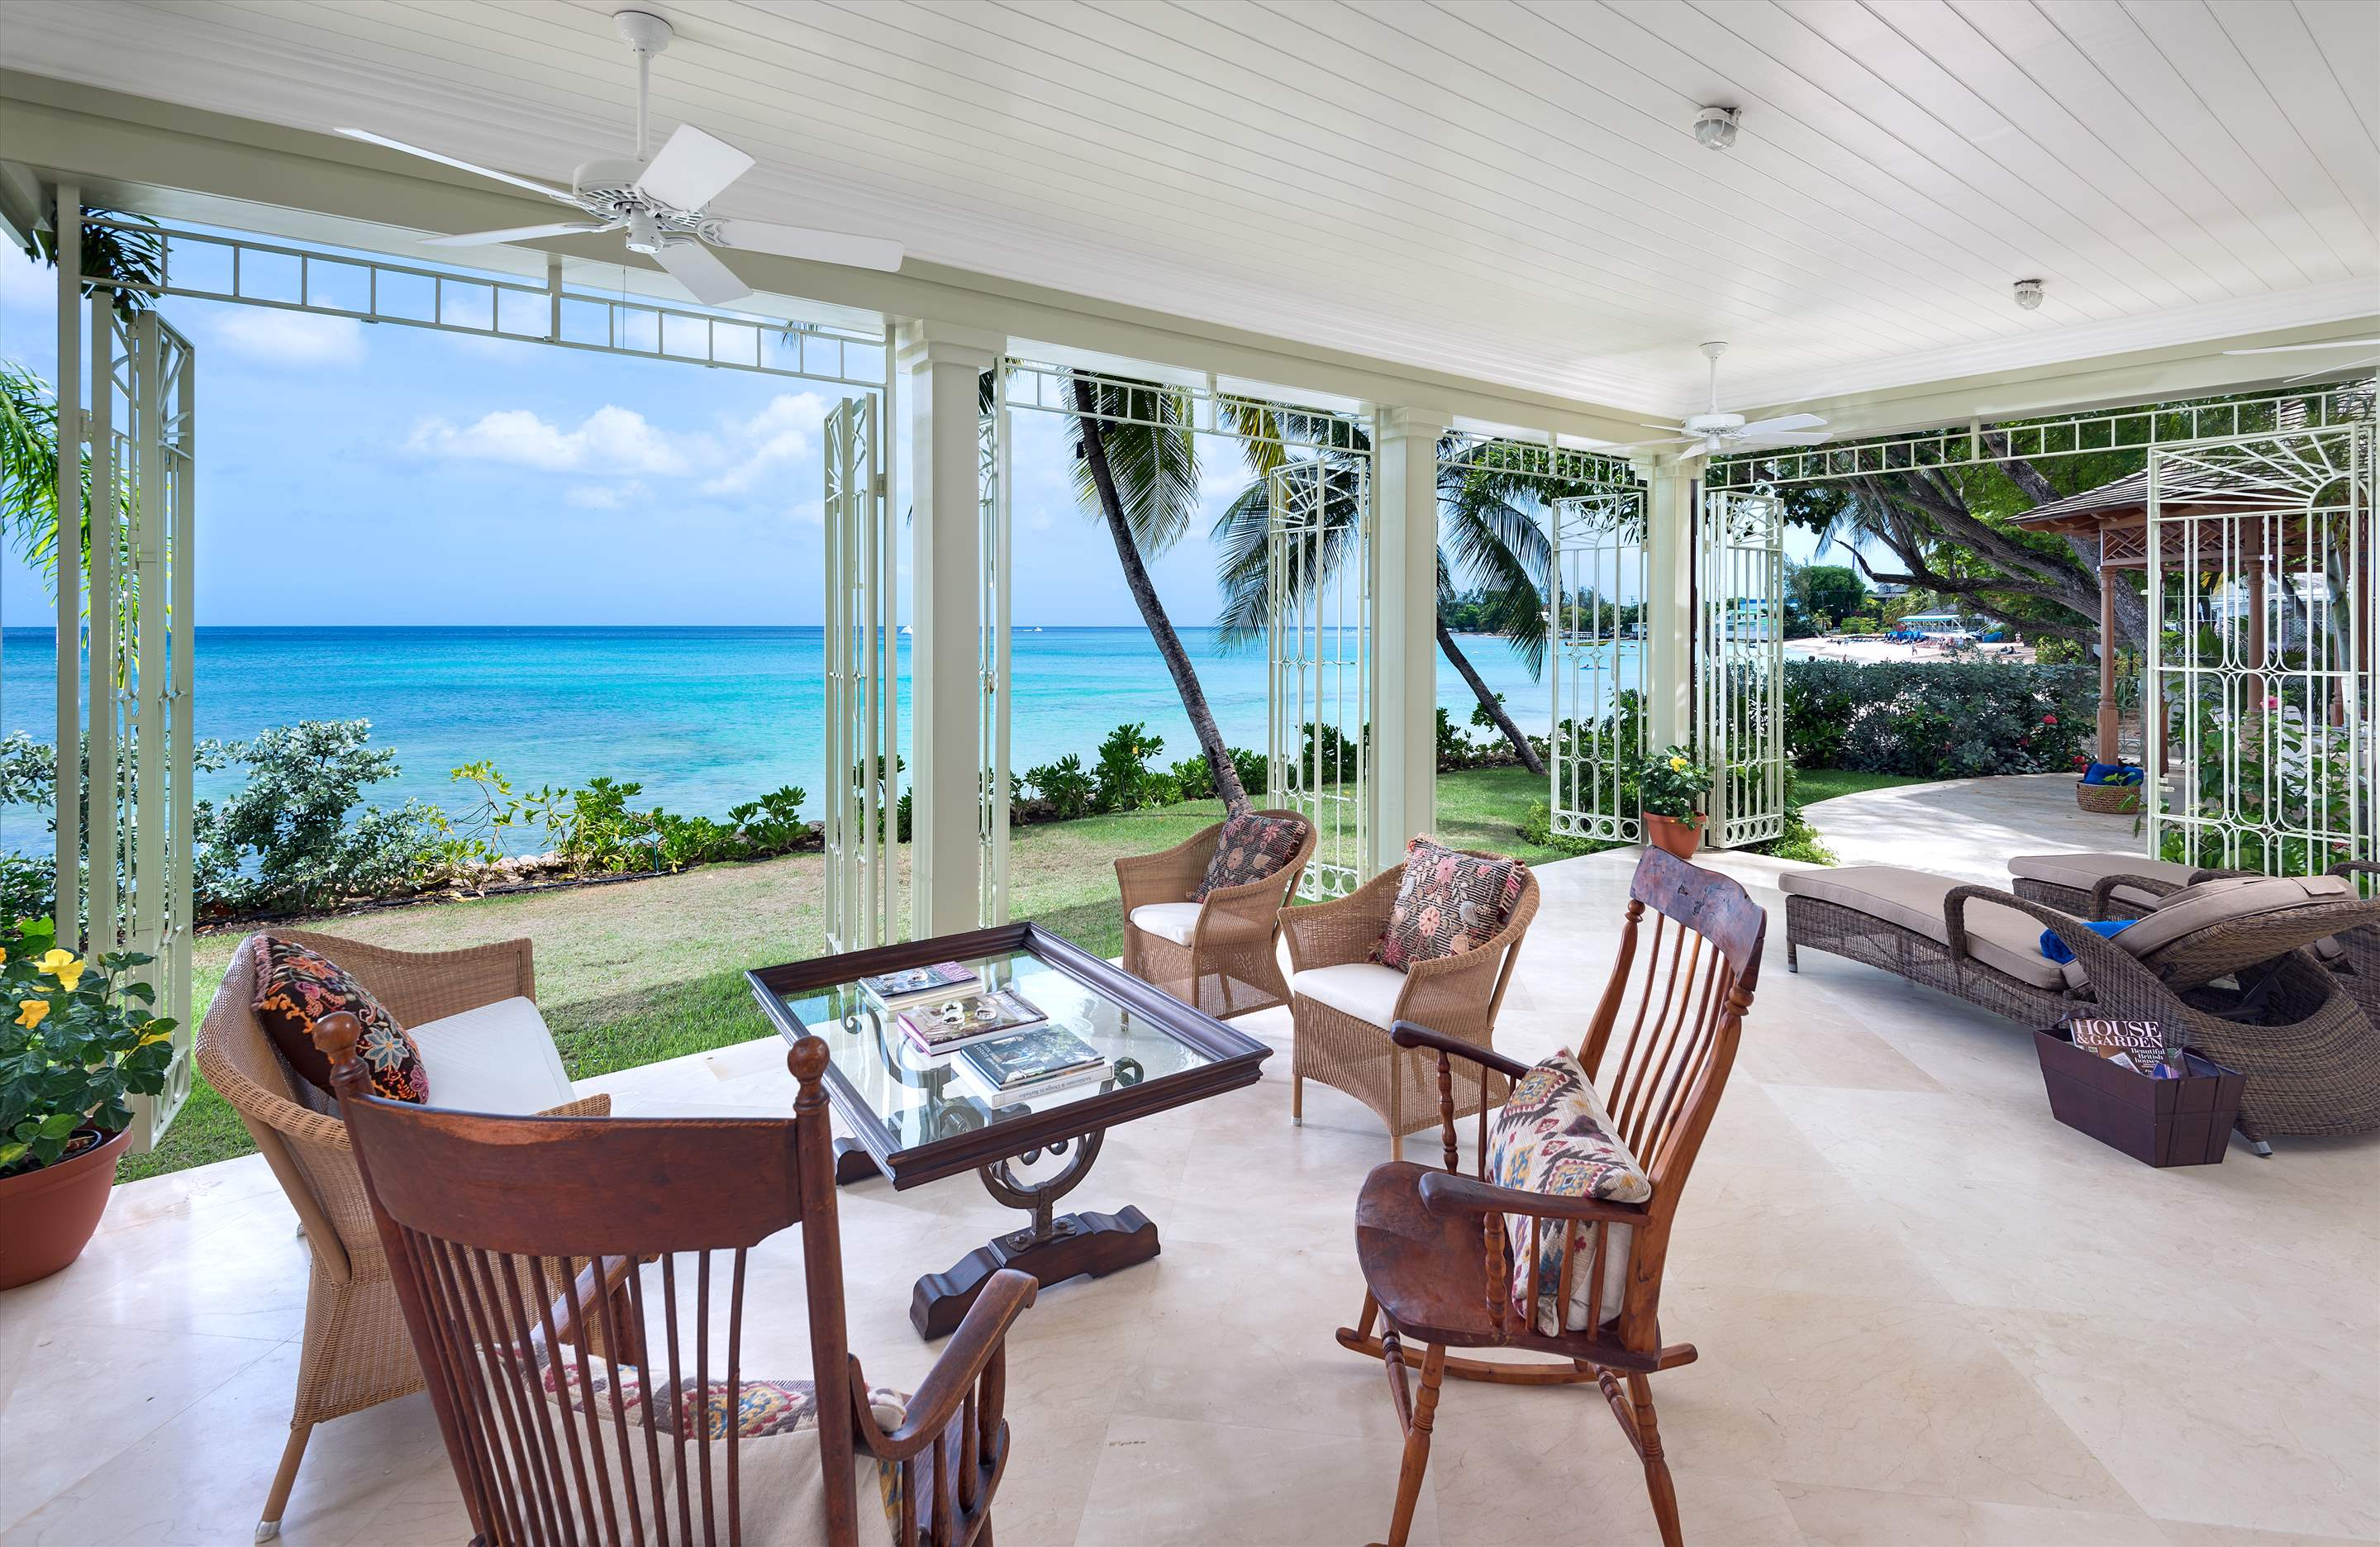 Hemingway House, St Peter, 4 bedroom villa in St. James & West Coast, Barbados Photo #3